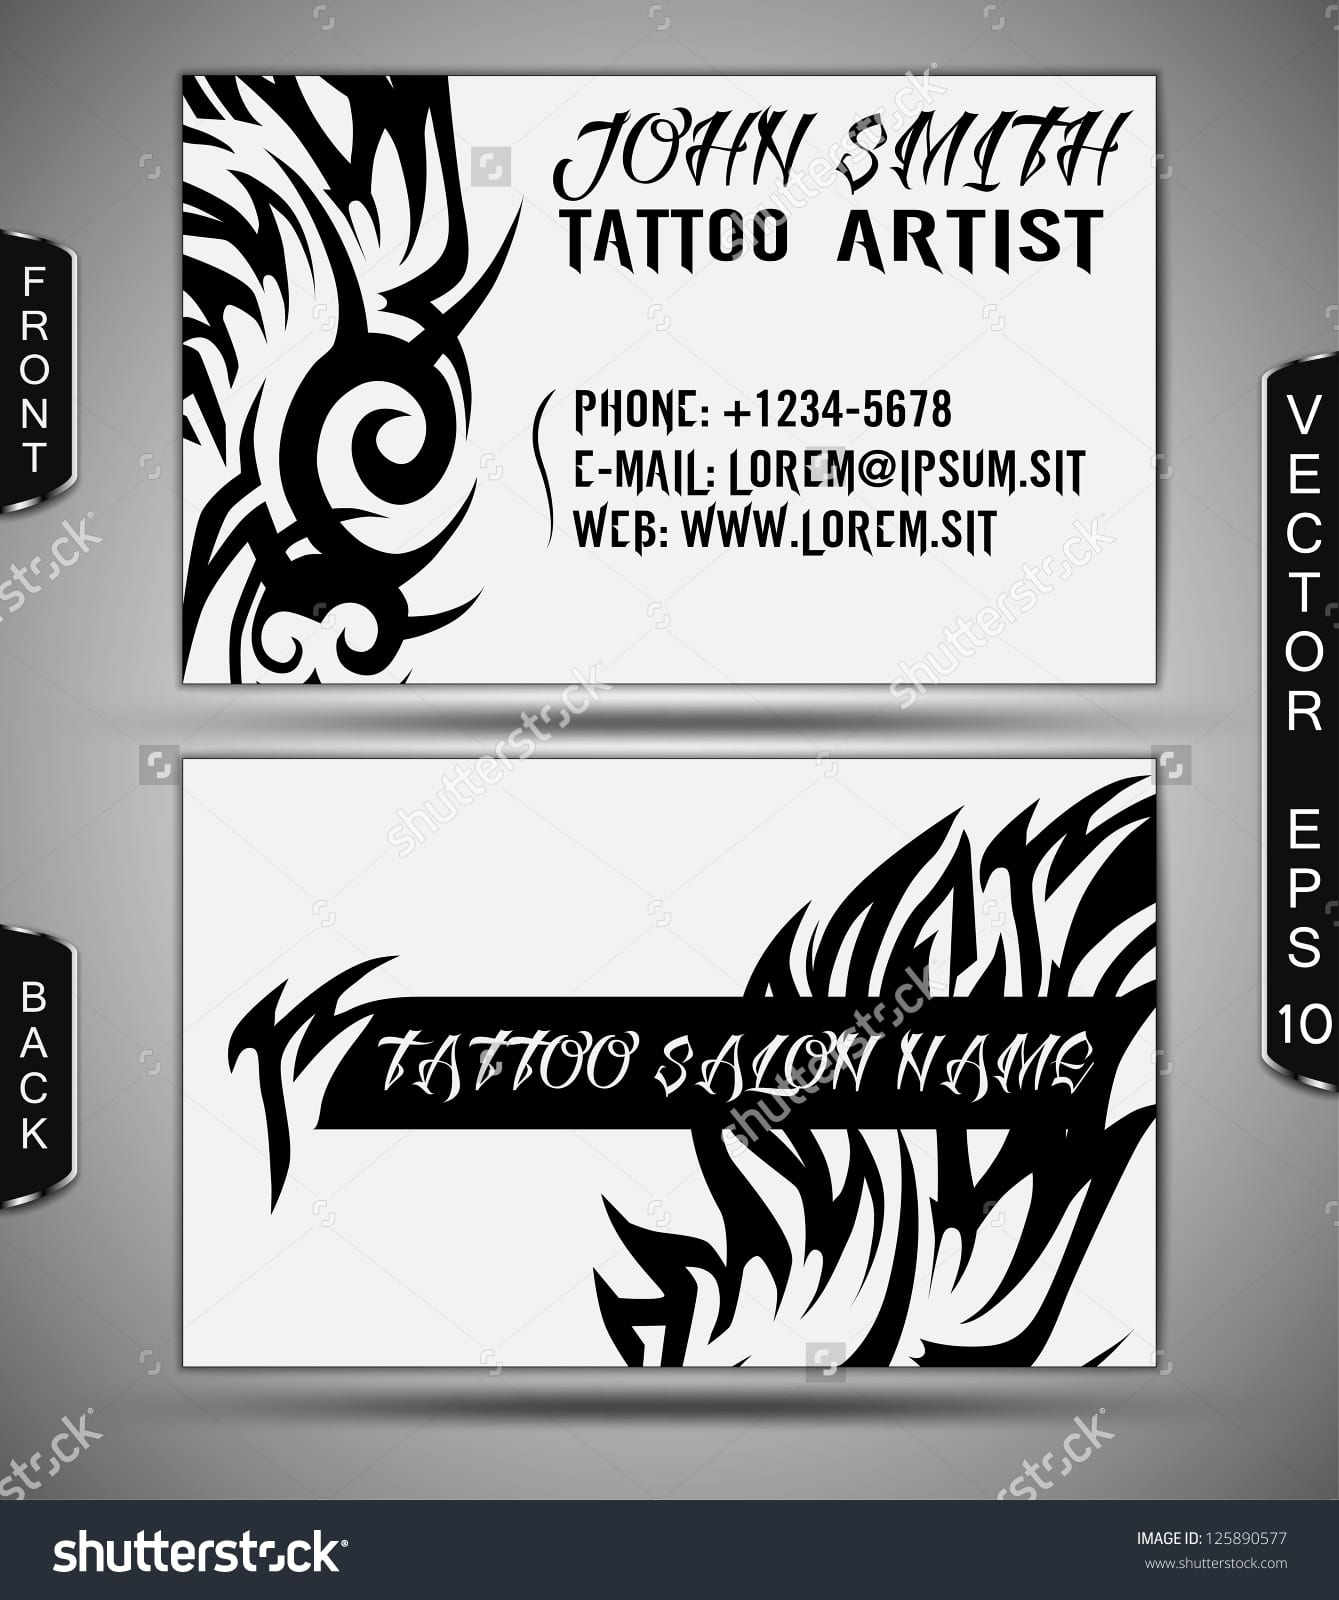 Tattoo Business Cards | Unlimitedgamers.co